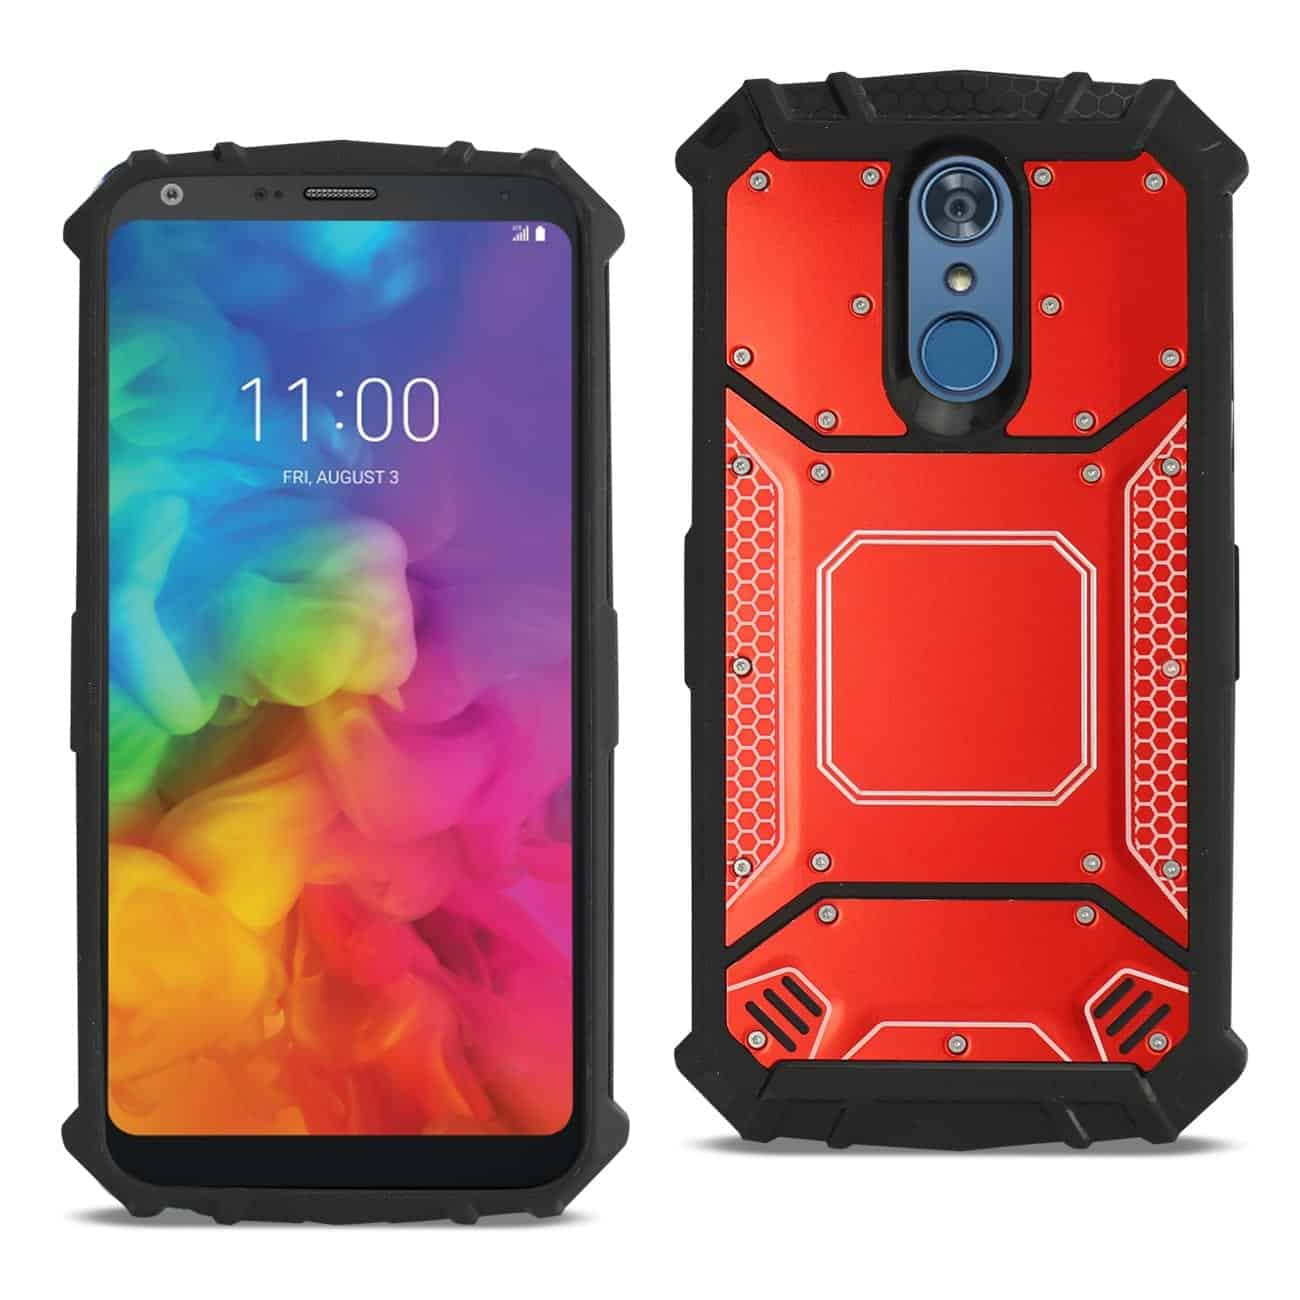 LG Q7 Plus Metallic Front Cover Case In Red